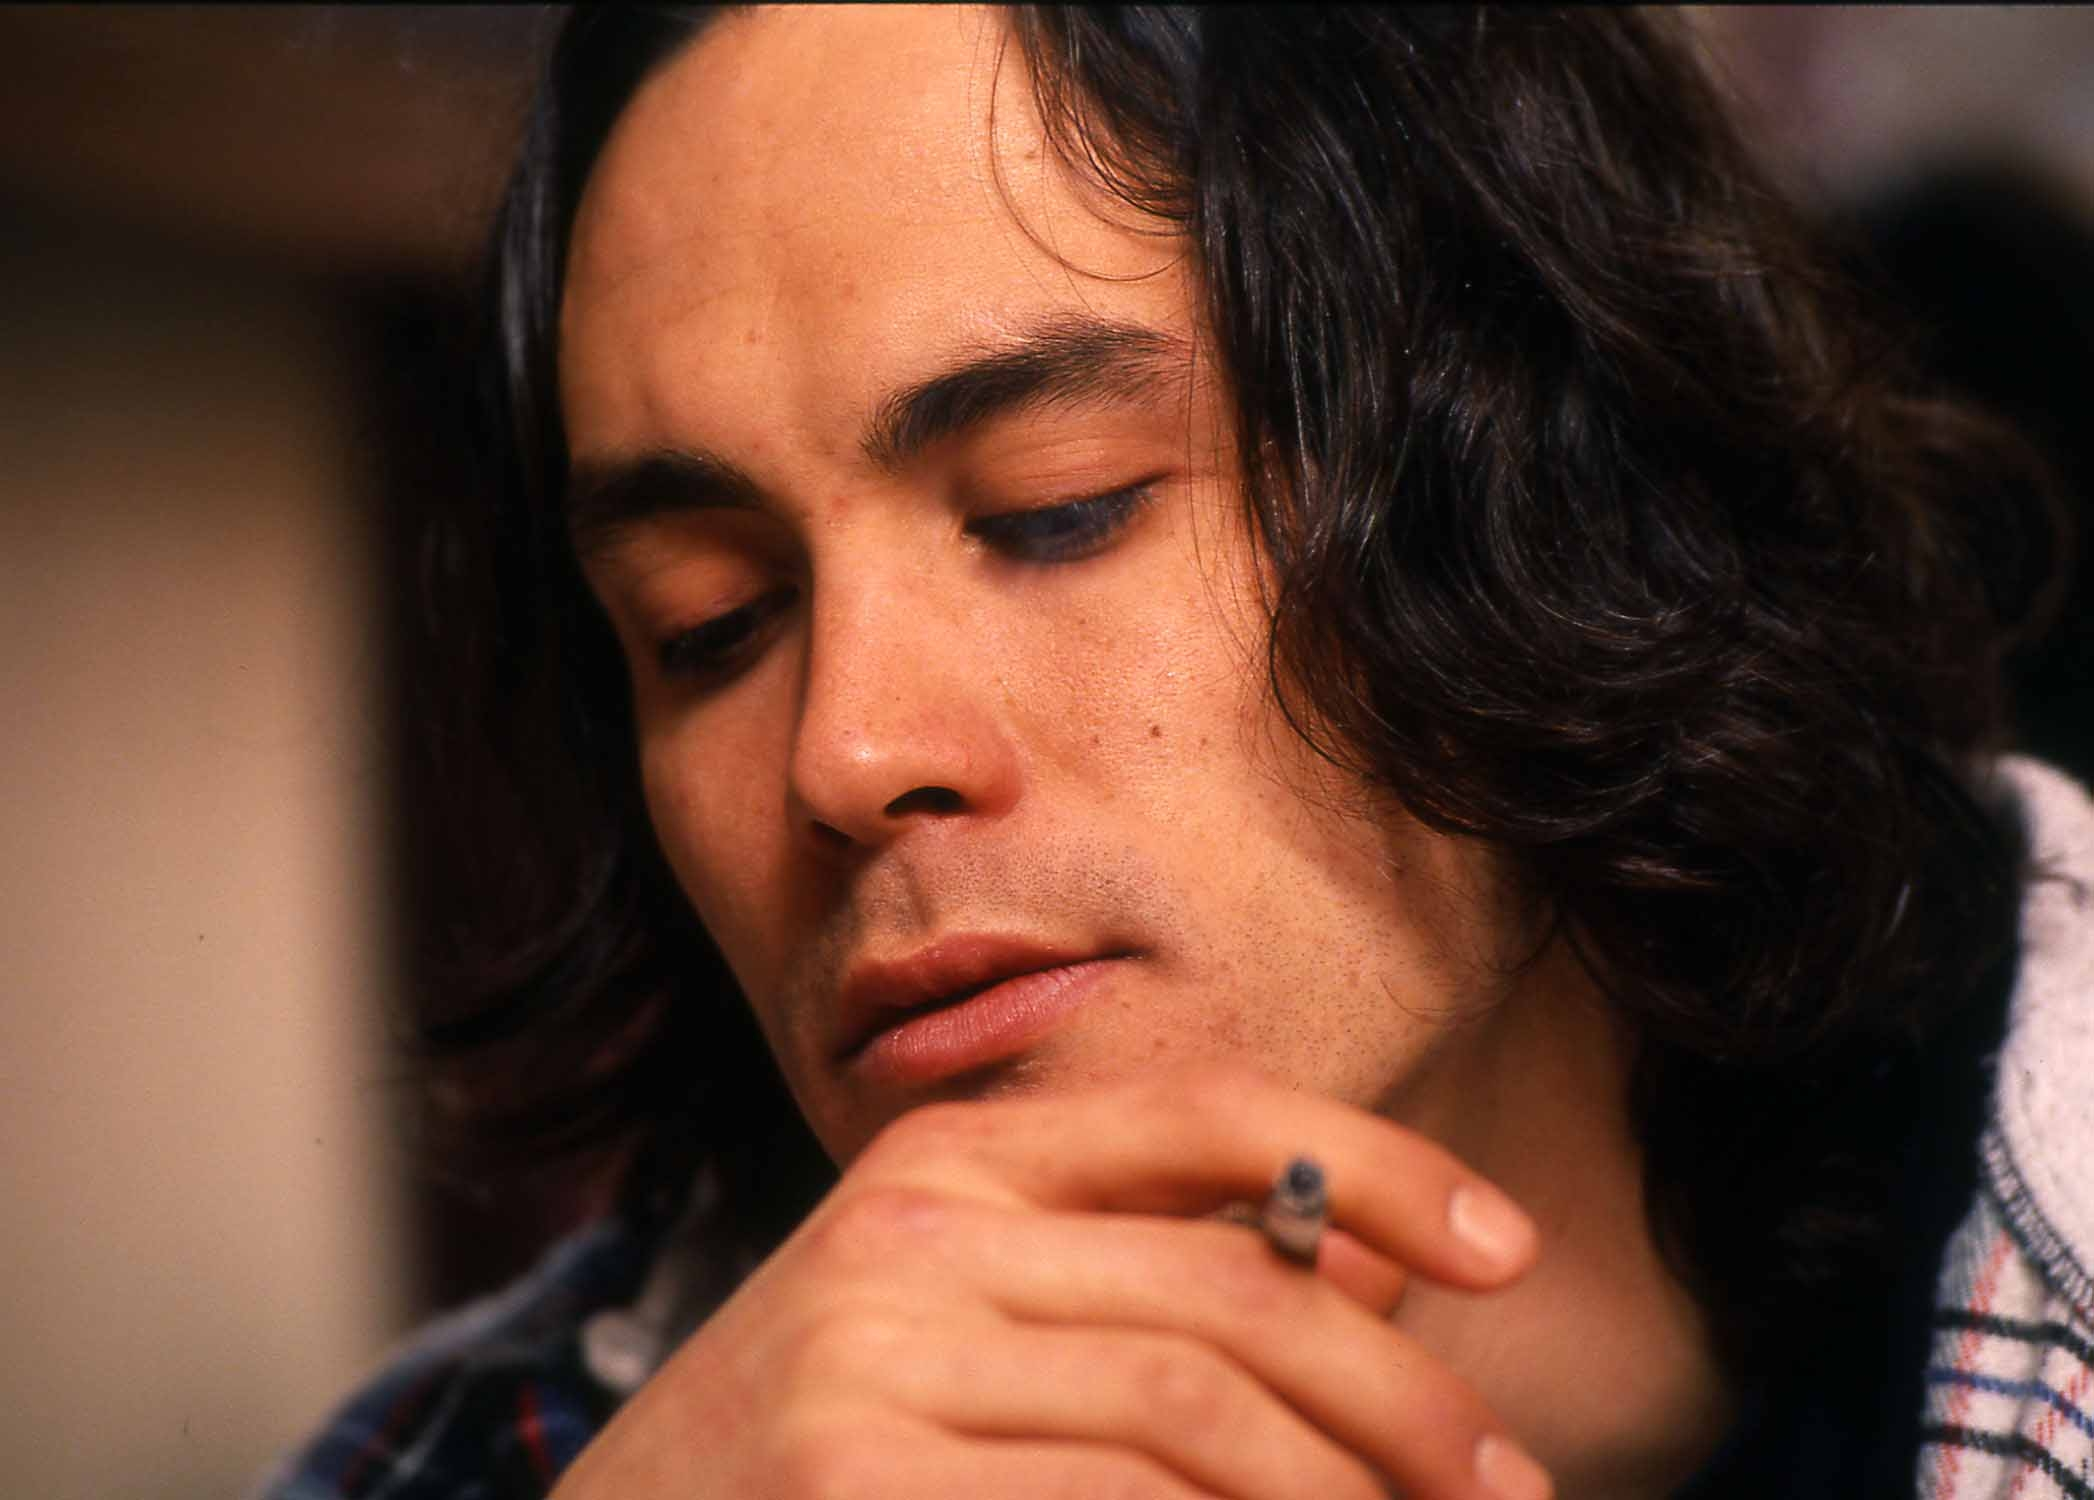 Actor Brandon Lee chain smokes cigarettes in his trailer during a late-night interview on March 23, 1993, the week before he died on the set of The Crow in Wilmington, N.C. - Photo by Jamie Moncrief / Wilmington Star-News